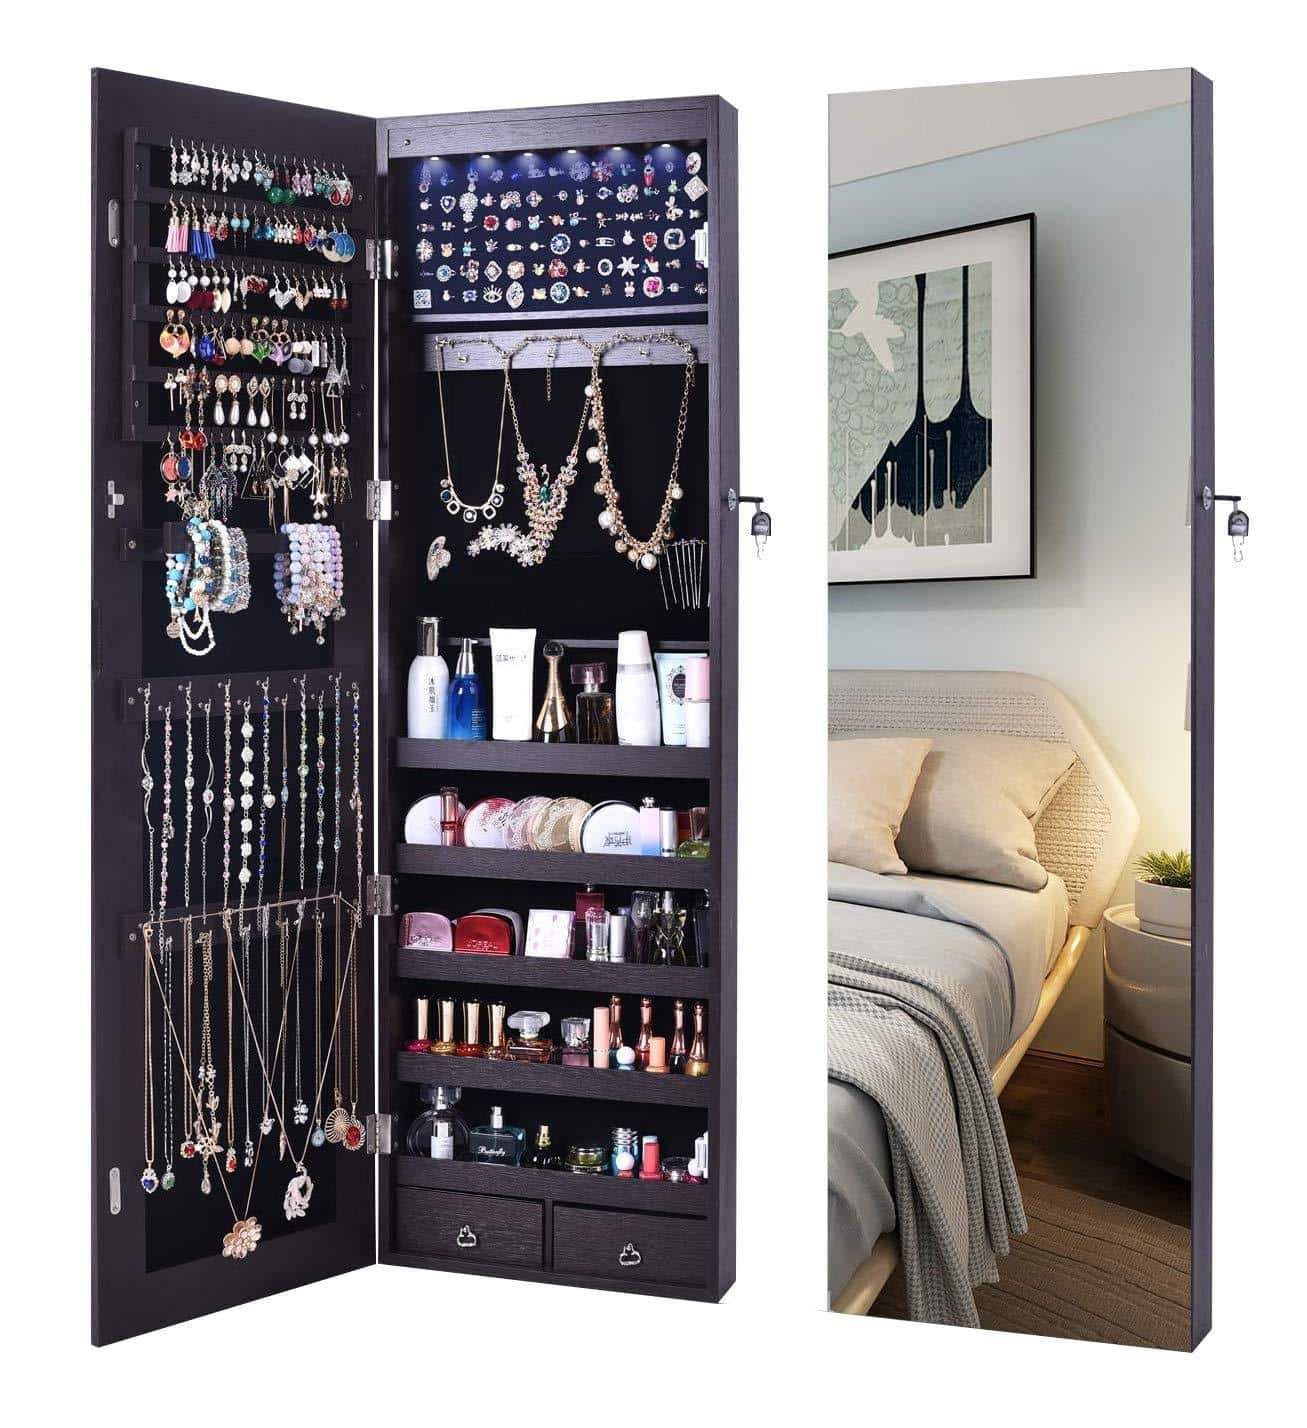 Budget aoou jewelry organizer jewelry cabinet wall mounted jewelry organizer with mirror full length mirror large capacity dressing makeup jewery mirror jewelry armoire brown